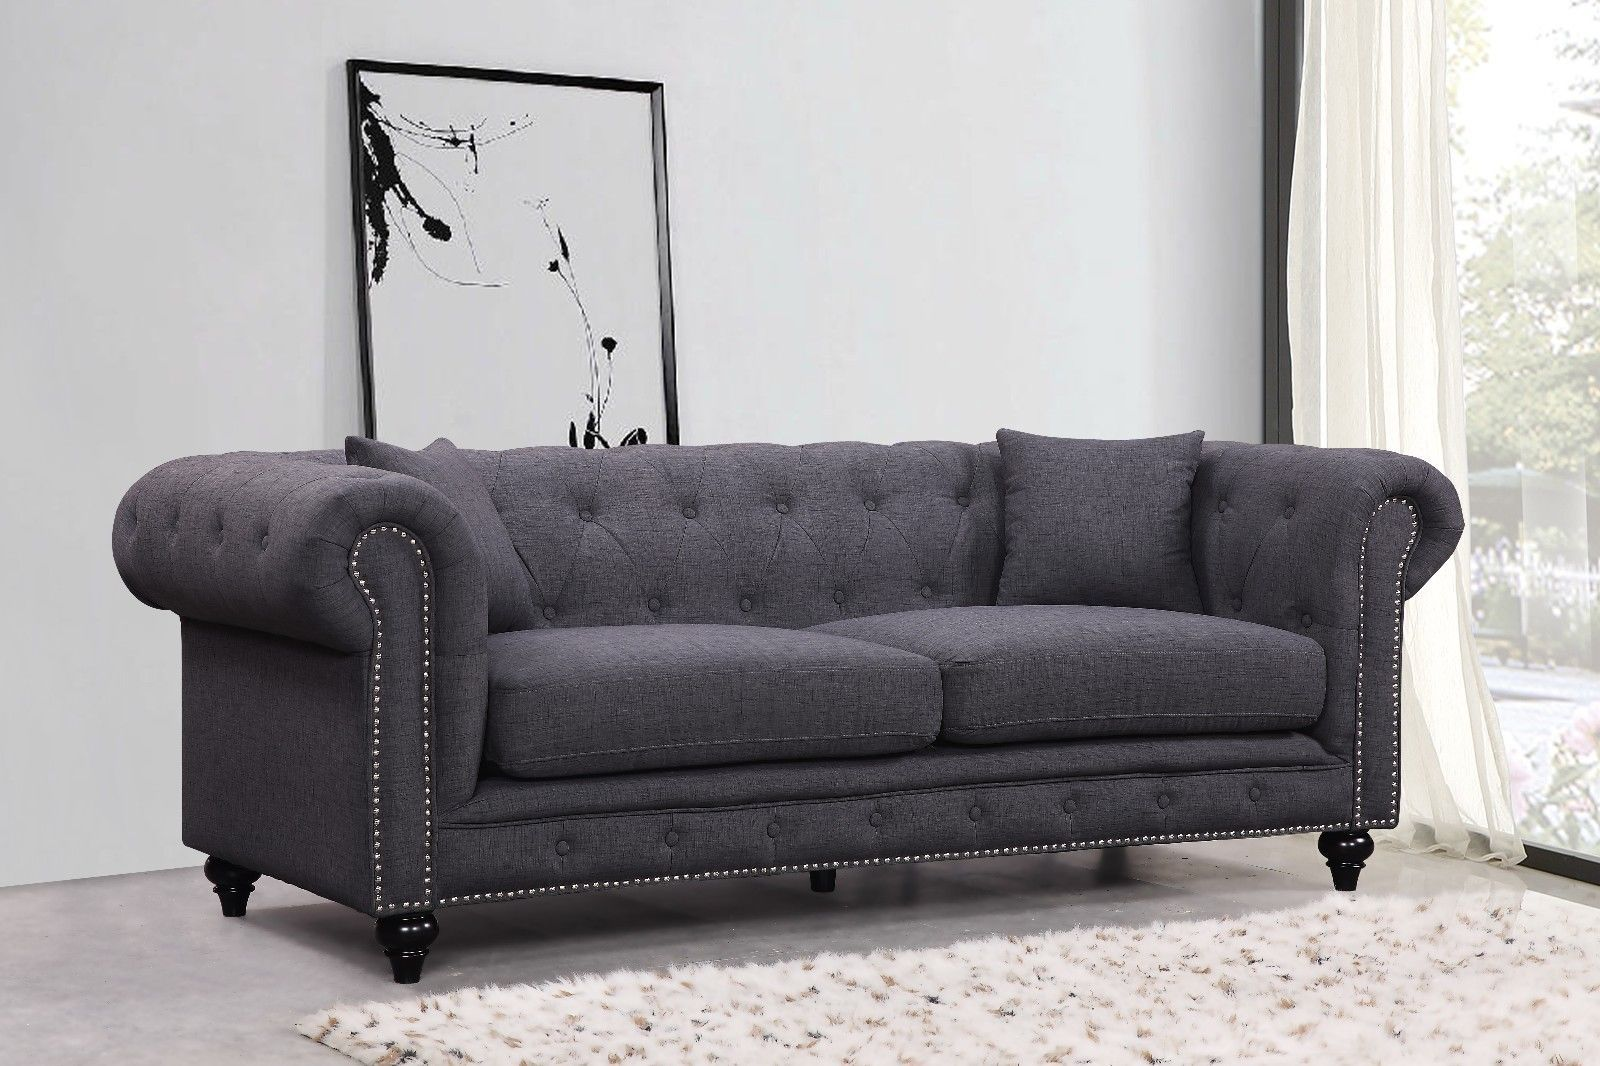 Meridian 662 Linen Fabric Living Room Sofa Set 2pc.Tufted Grey Traditional Style